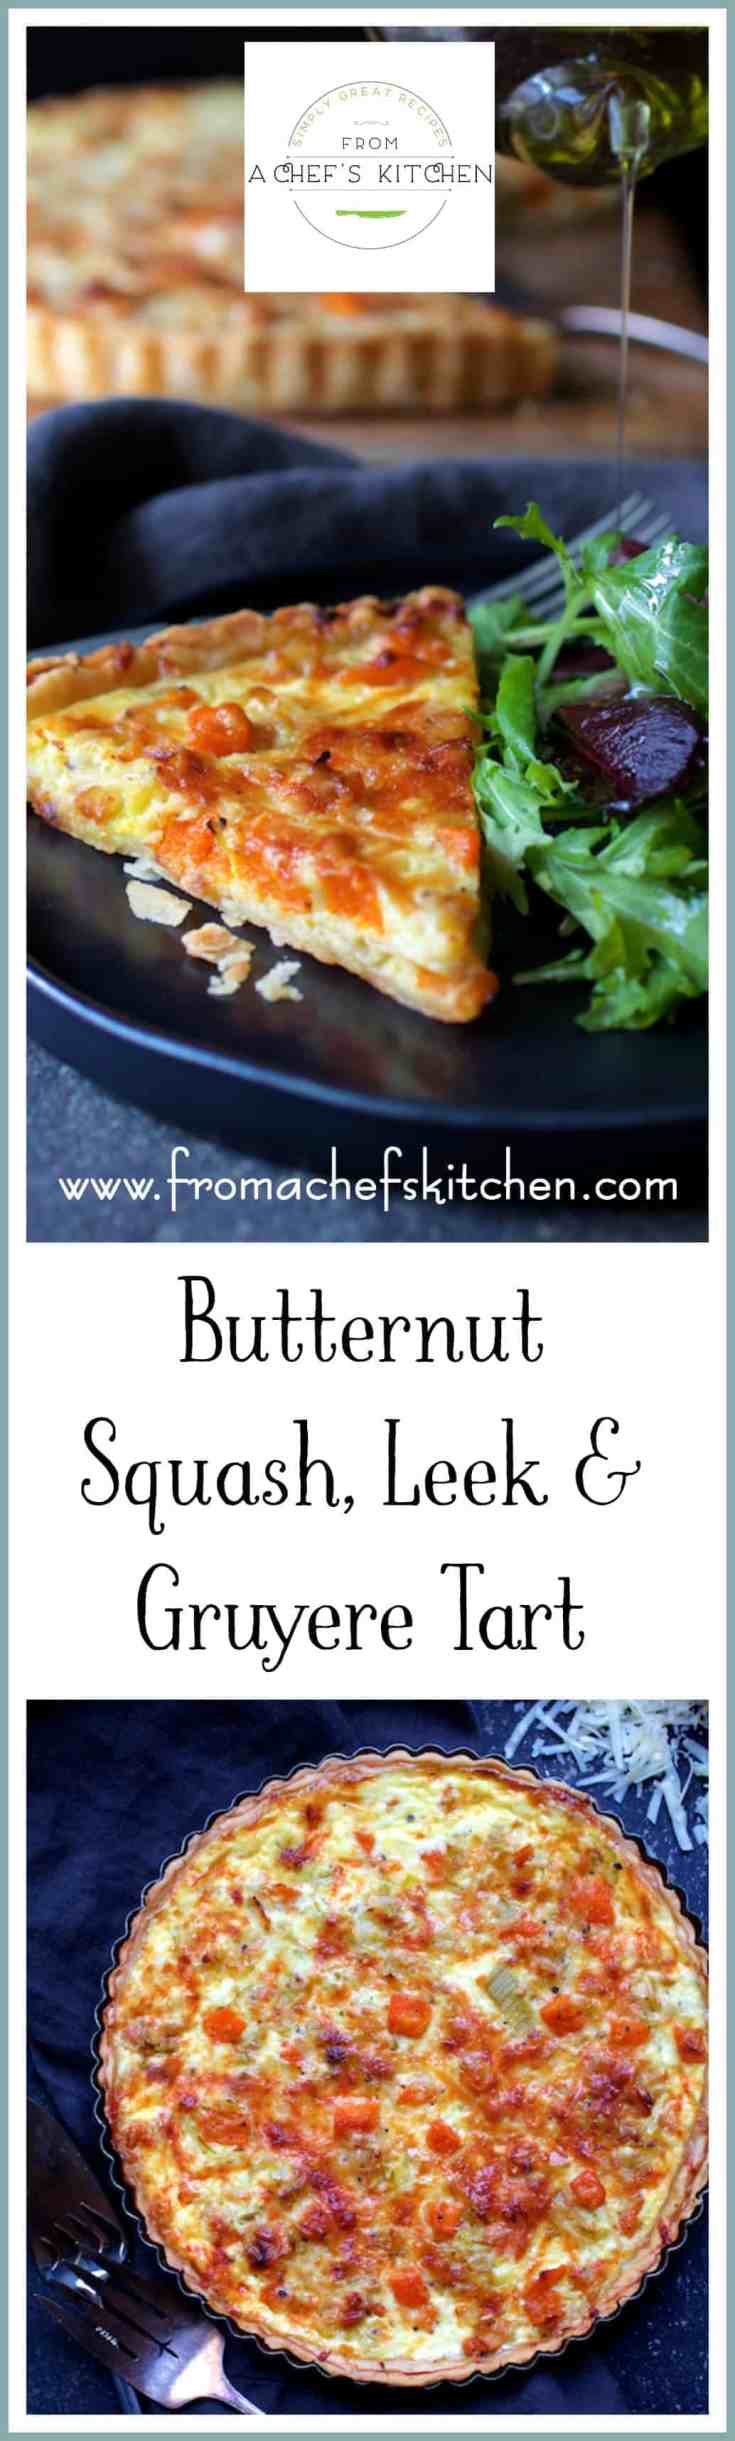 Butternut Squash, Leek and Gruyere Tart is a lovely French-inspired midwinter meal perfect for lunch, brunch or light supper.  #tart #quiche #butternutsquash #squashrecipes